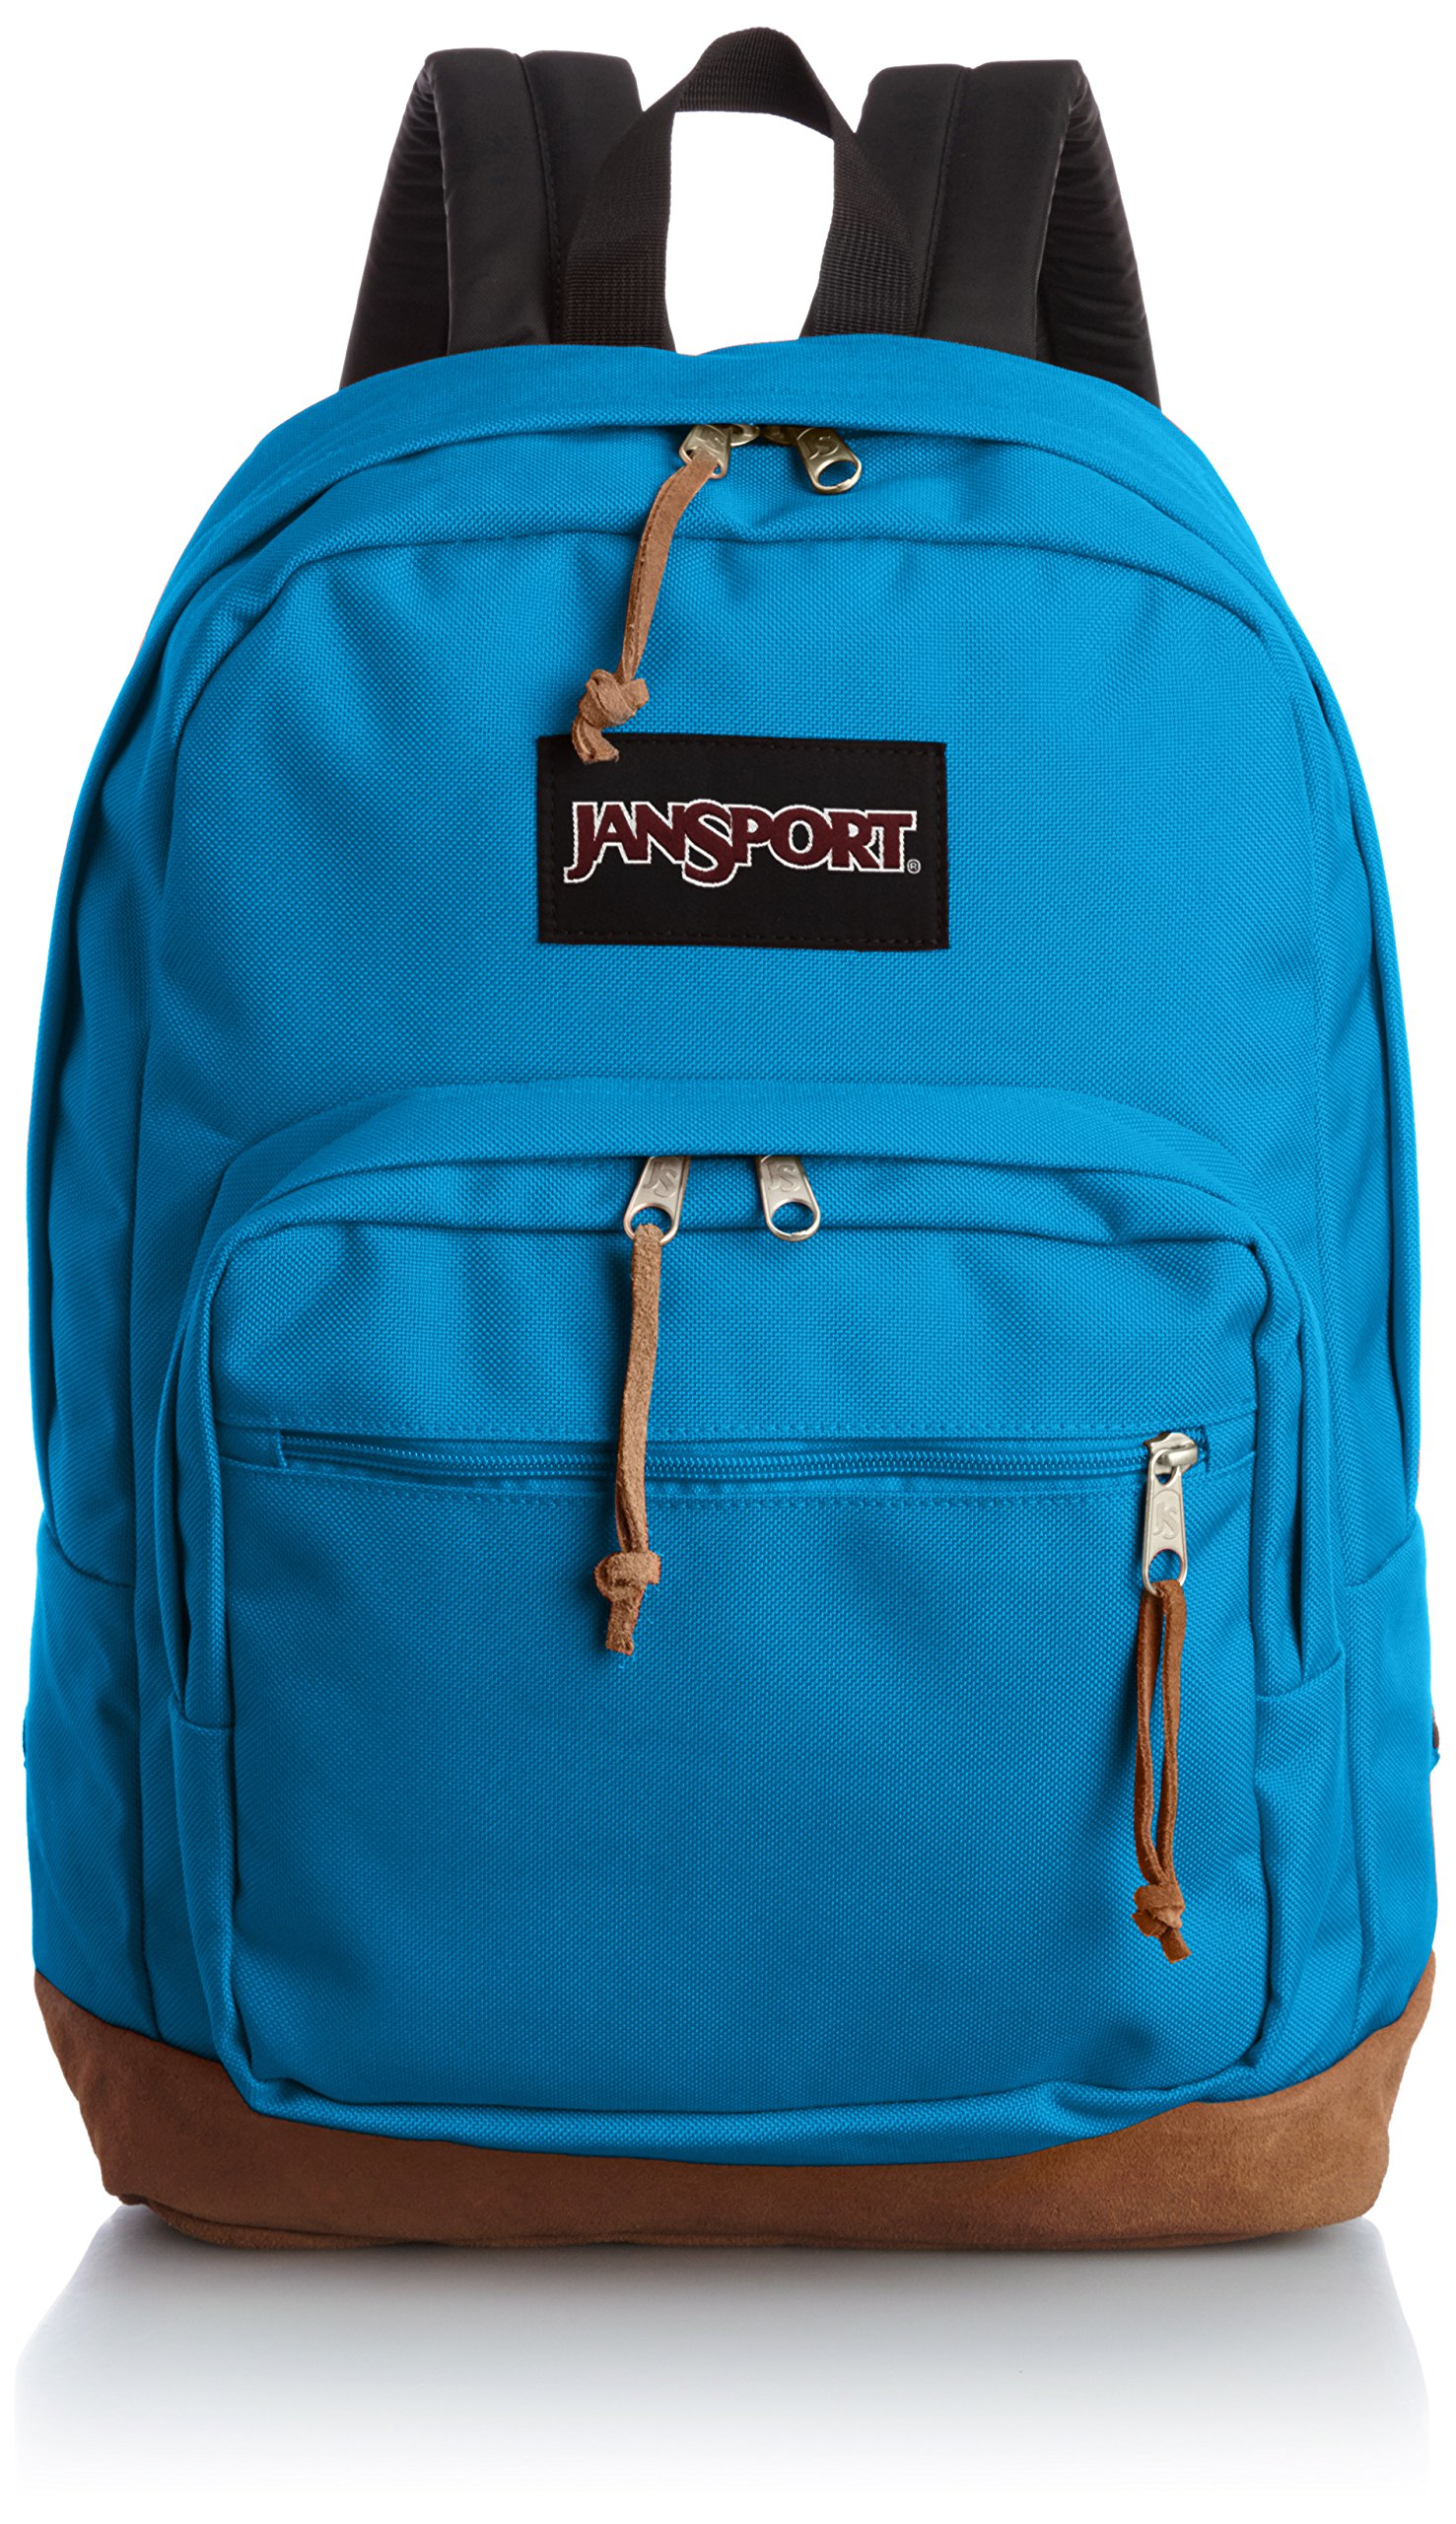 Jansport Right Pack Blue Crest TYP701F